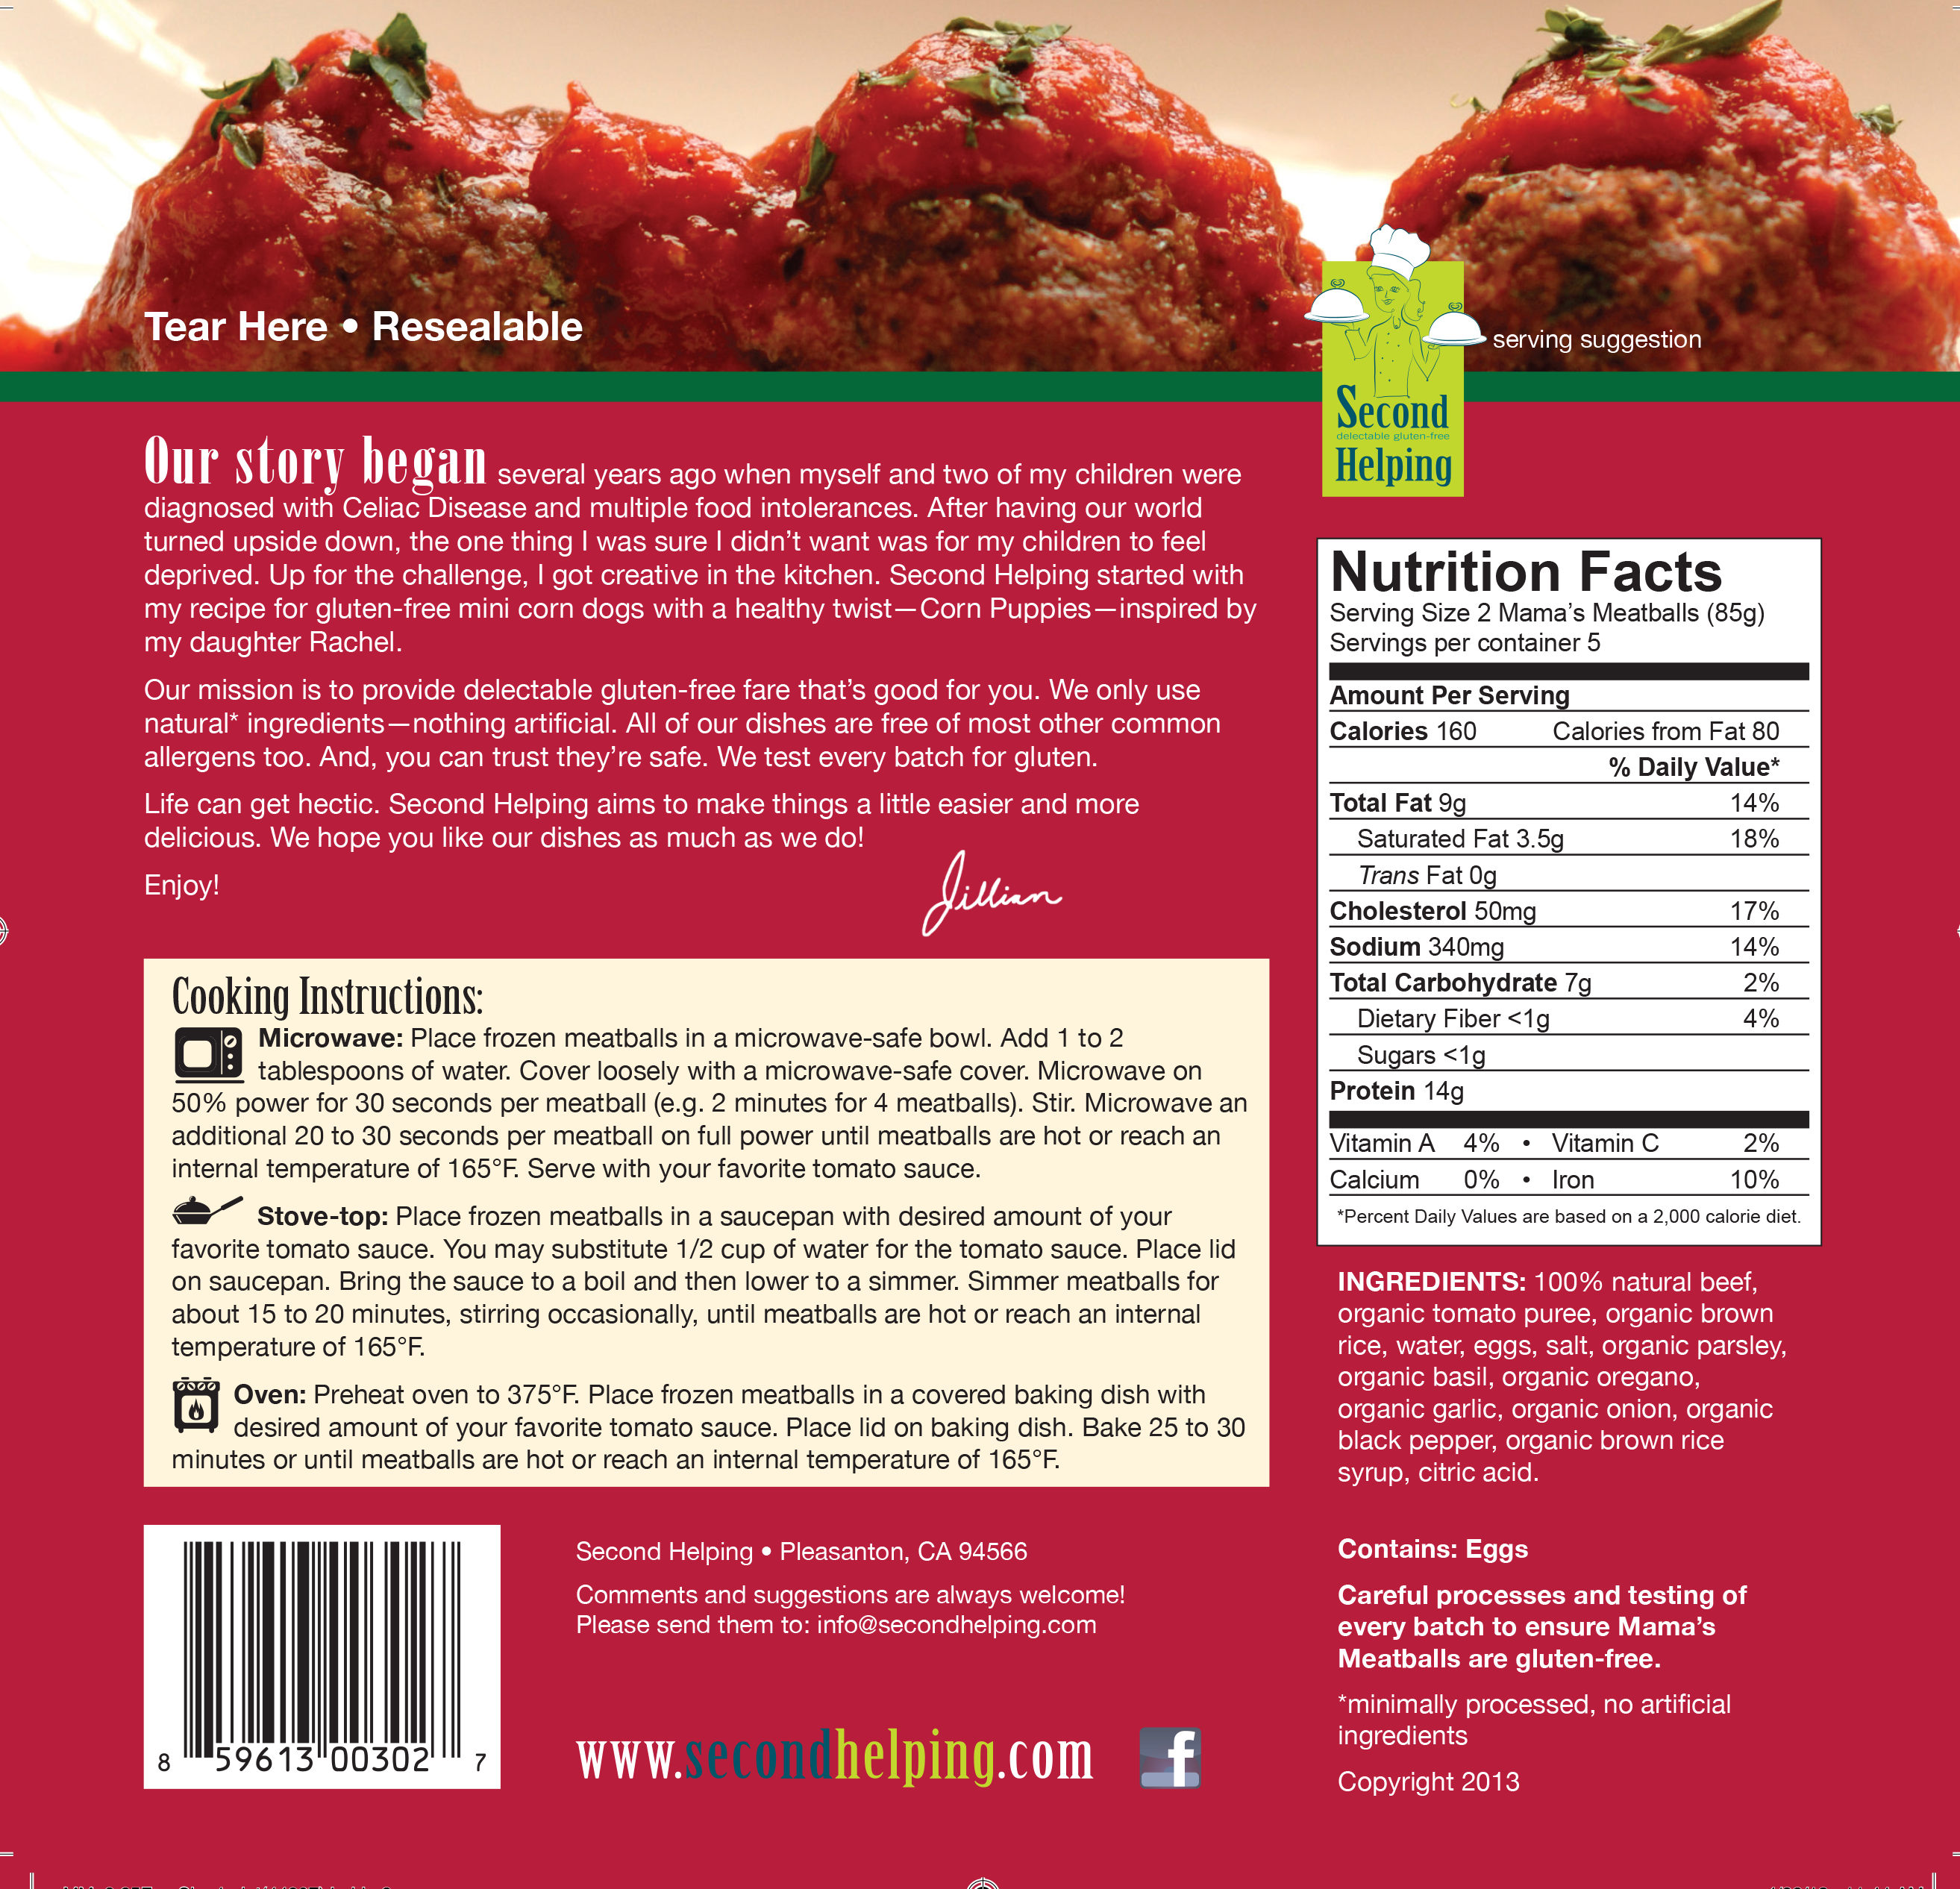 Mama's Meatballs packaging